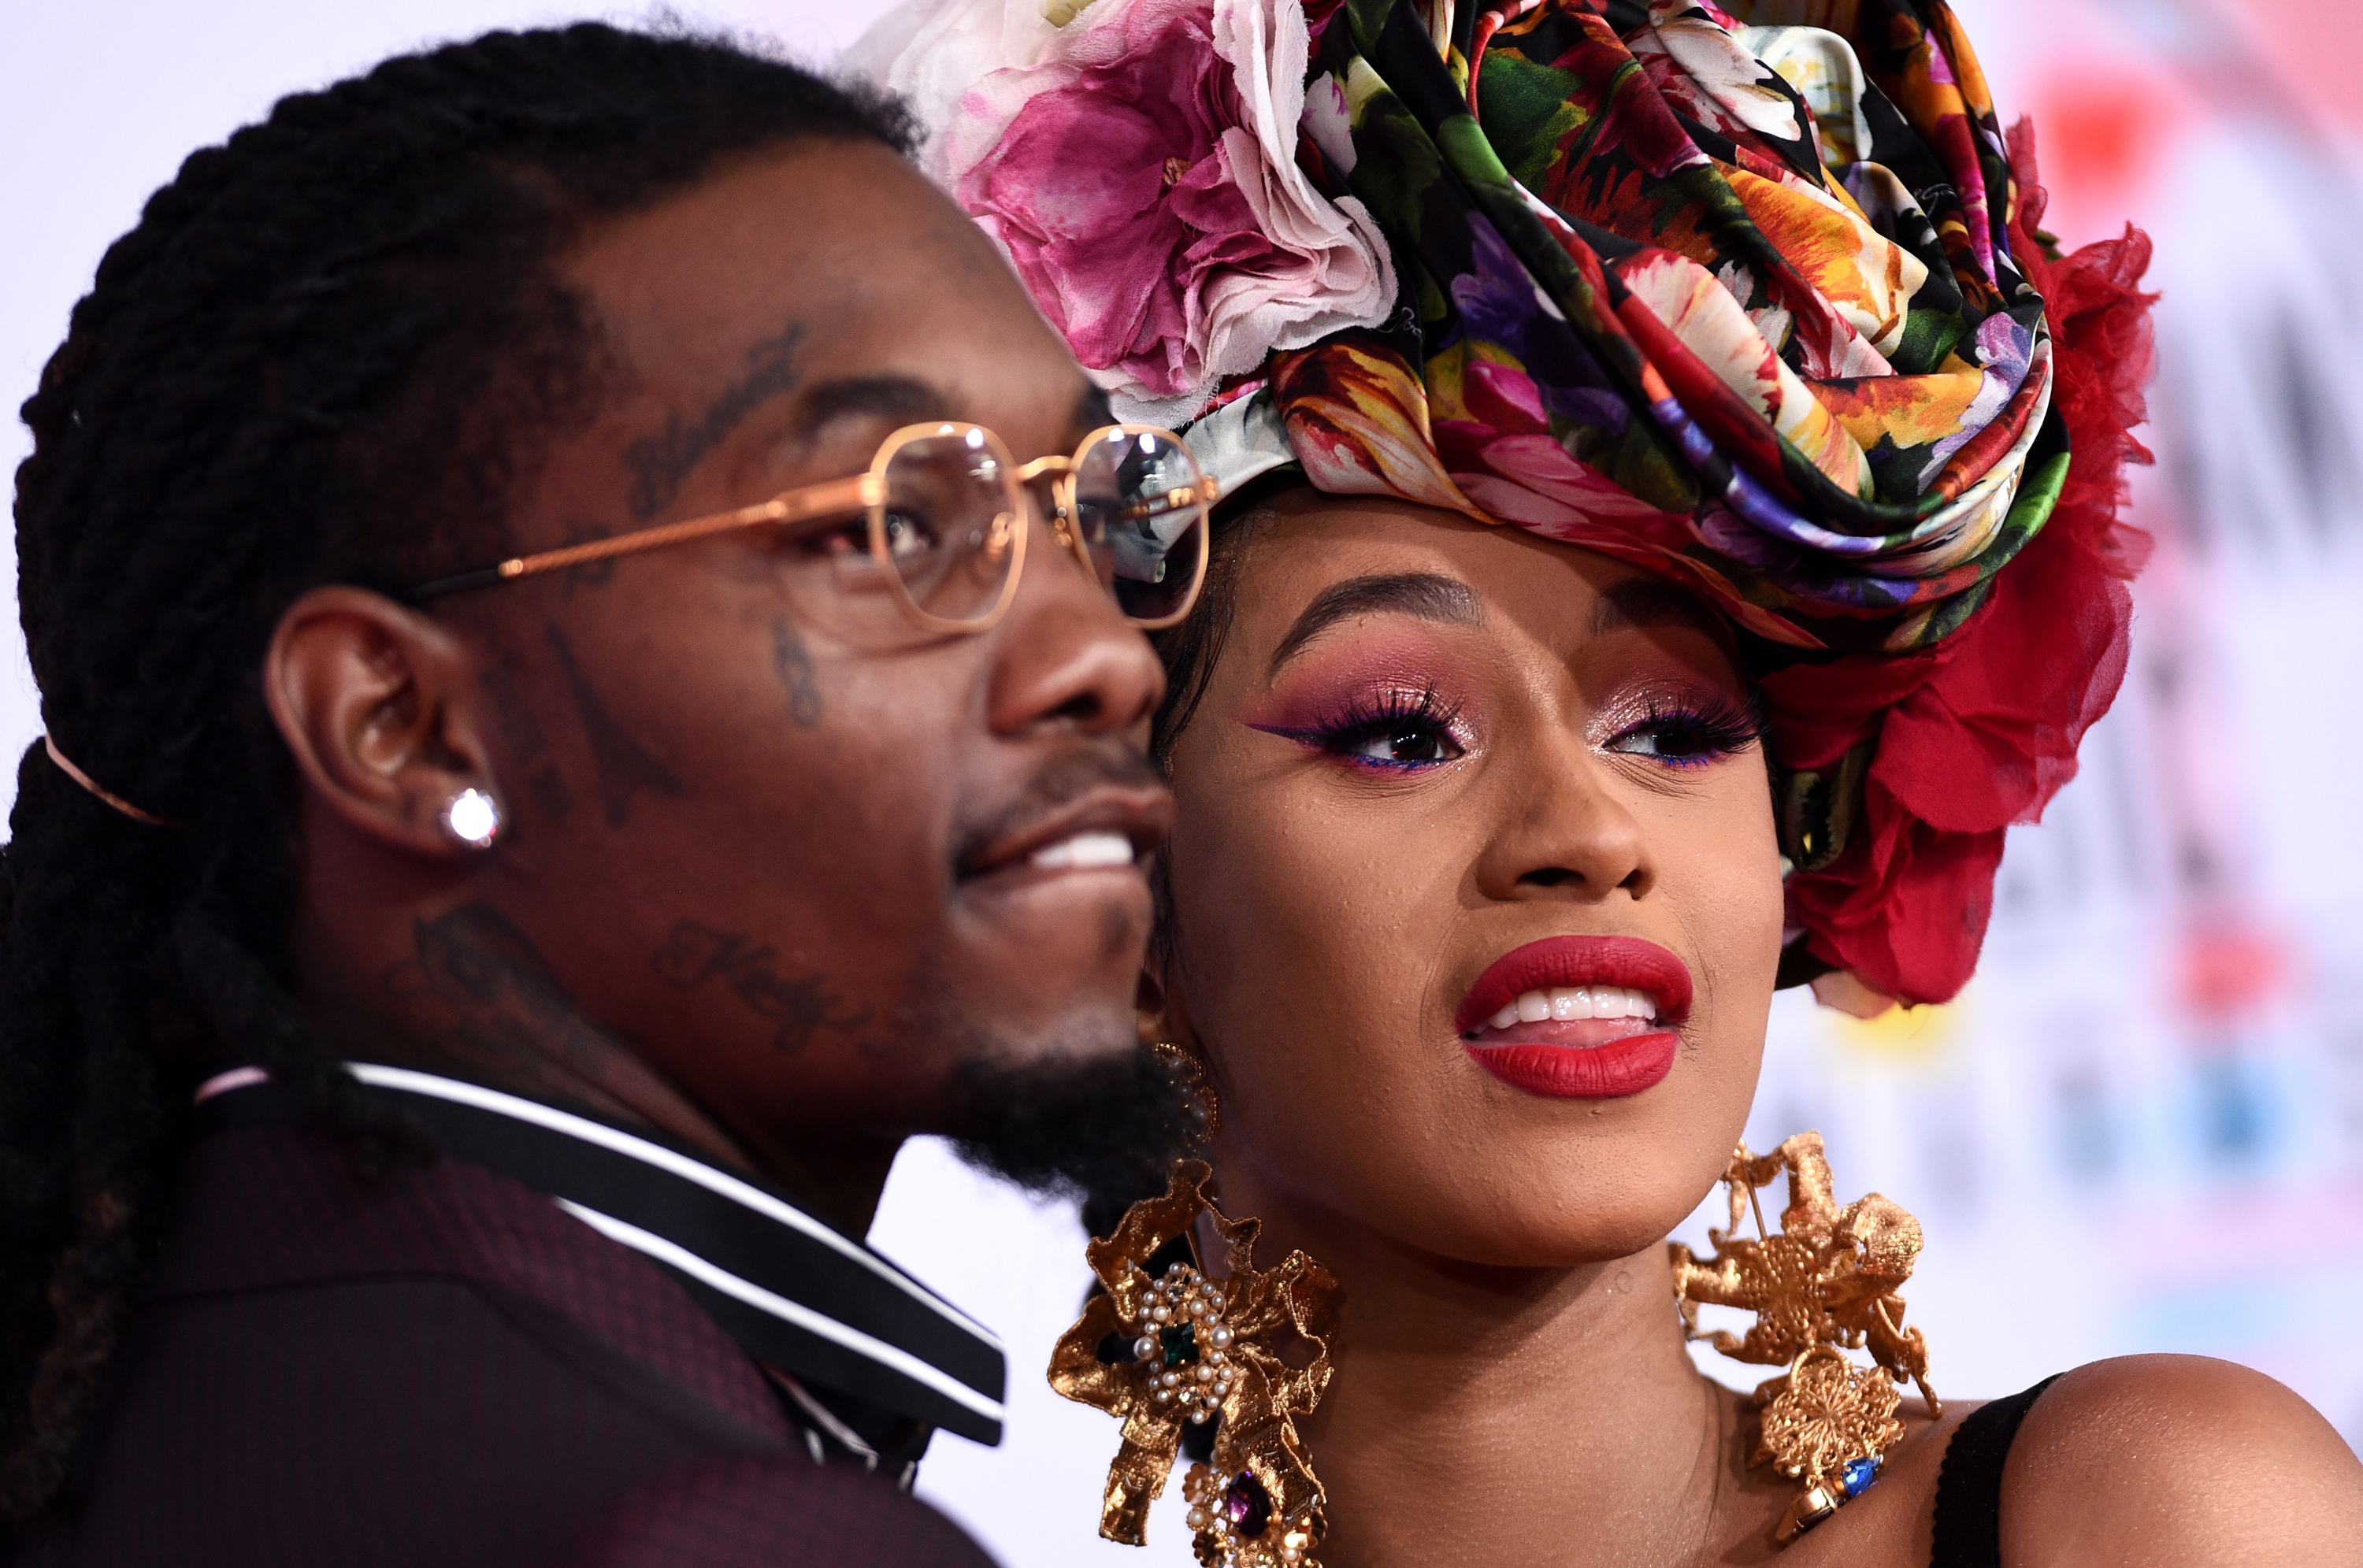 Cardi B Reveals Huge Offset Tattoo Of Husband S Name On: Cardi B Announces Split With Offset